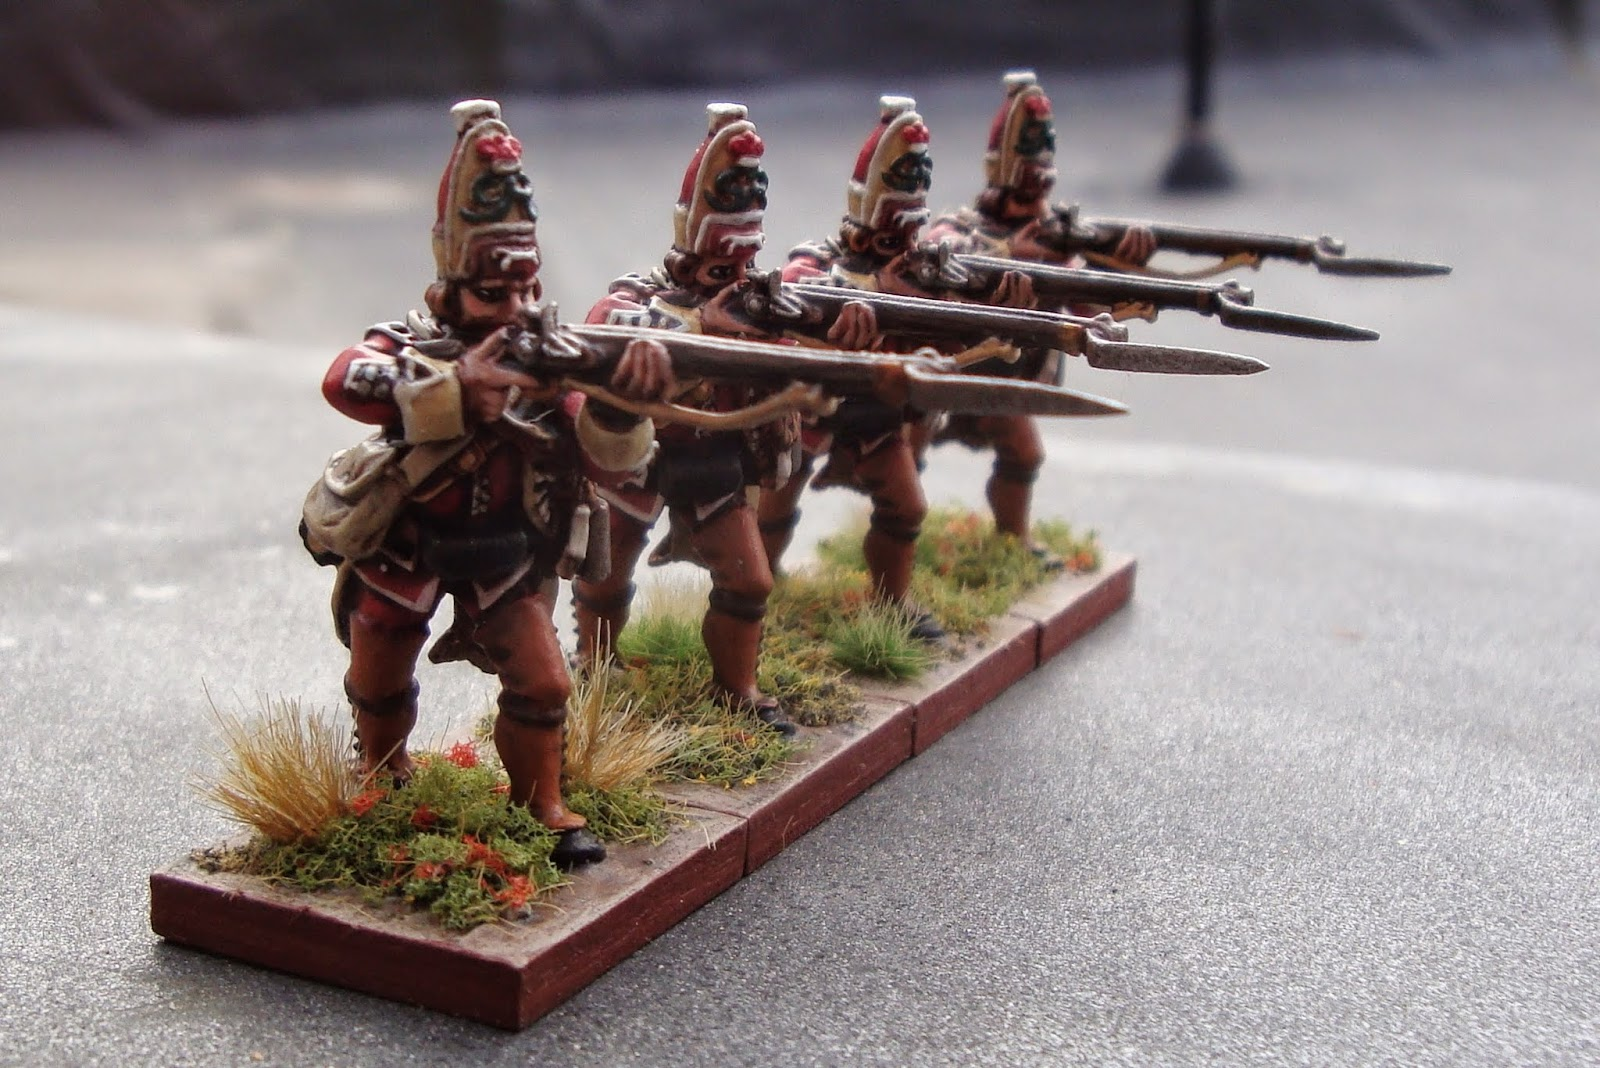 Fig. 6: 3mm plywood bases from Litko, flocking and all paint used from the Toy Soldier.